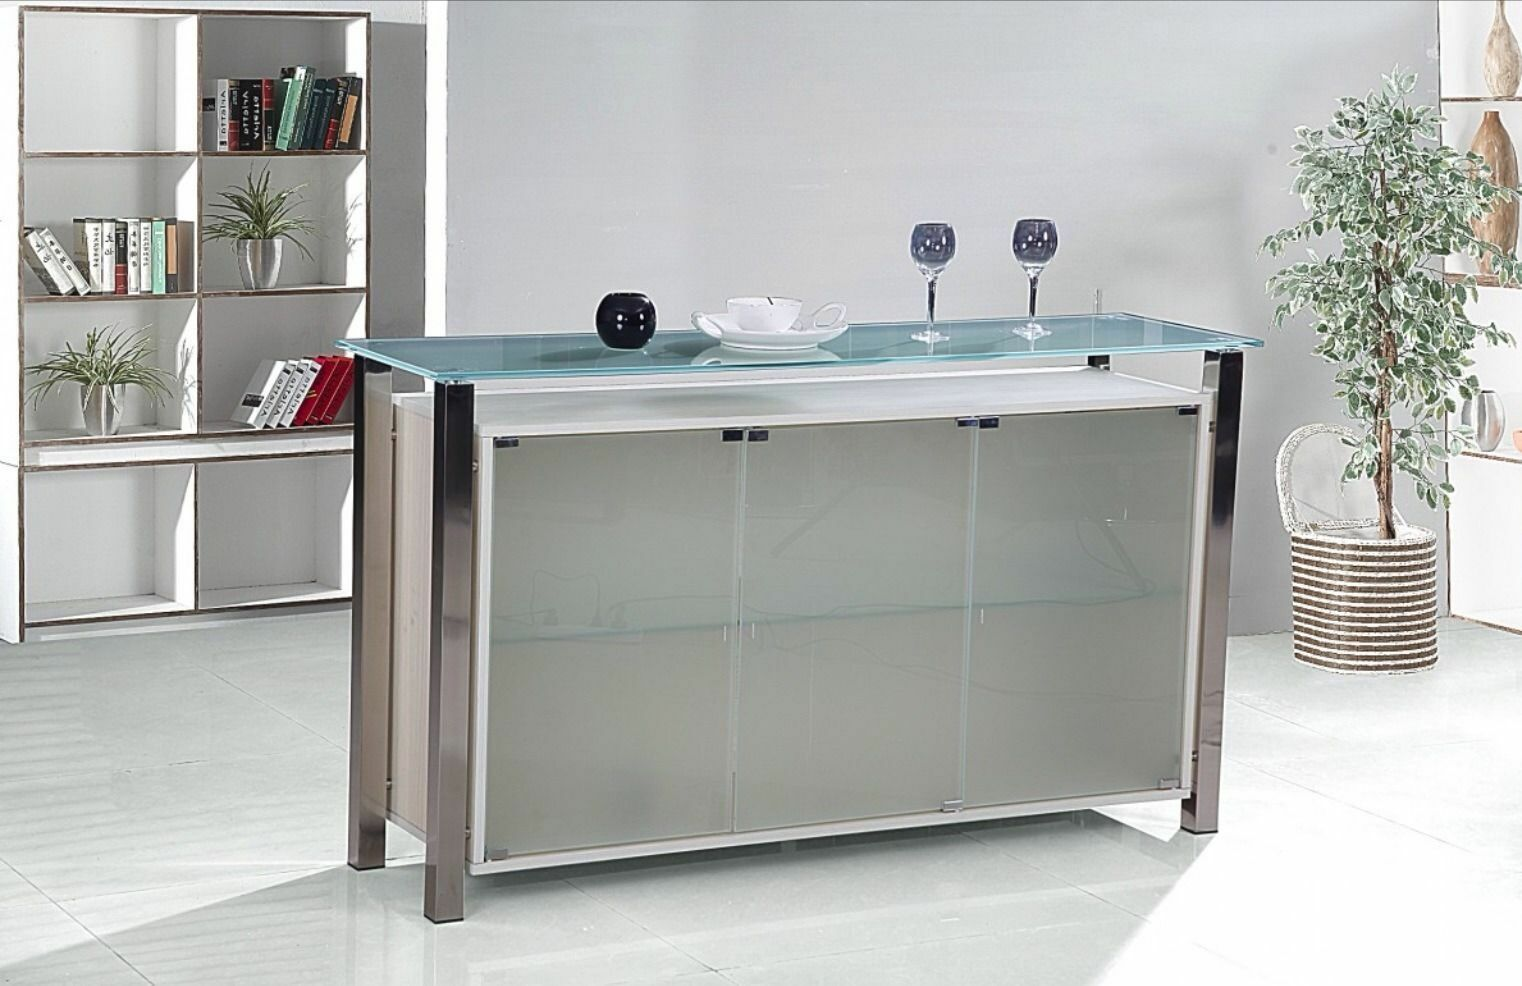 What to look for when buying a drinks cabinet ebay for What to look for when buying kitchen cabinets